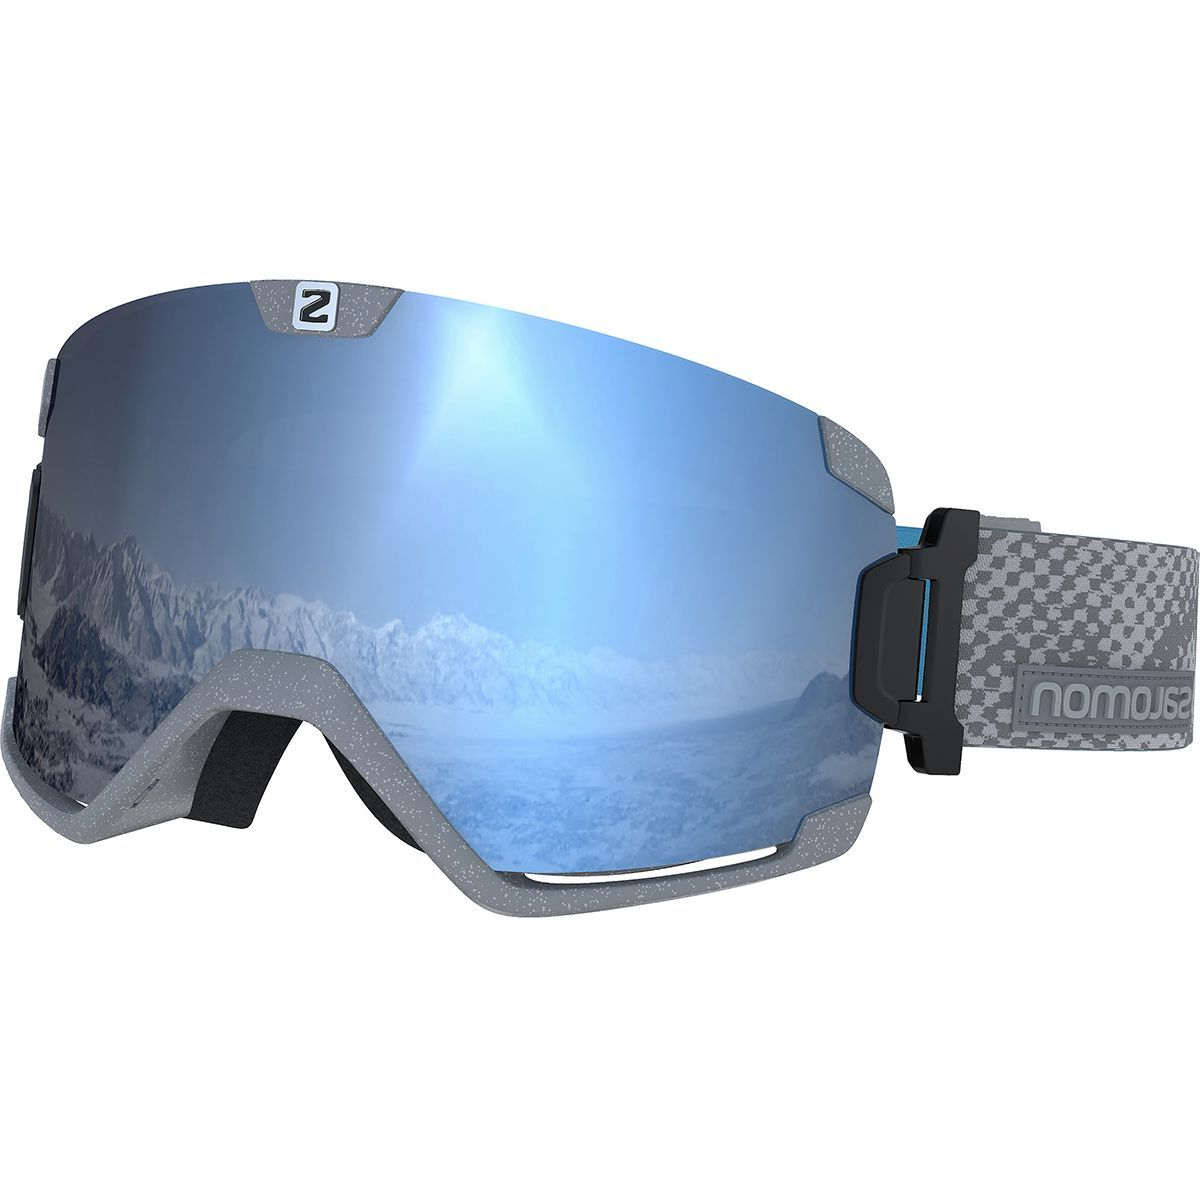 Salomon Cosmic Sigma Goggles - Men's